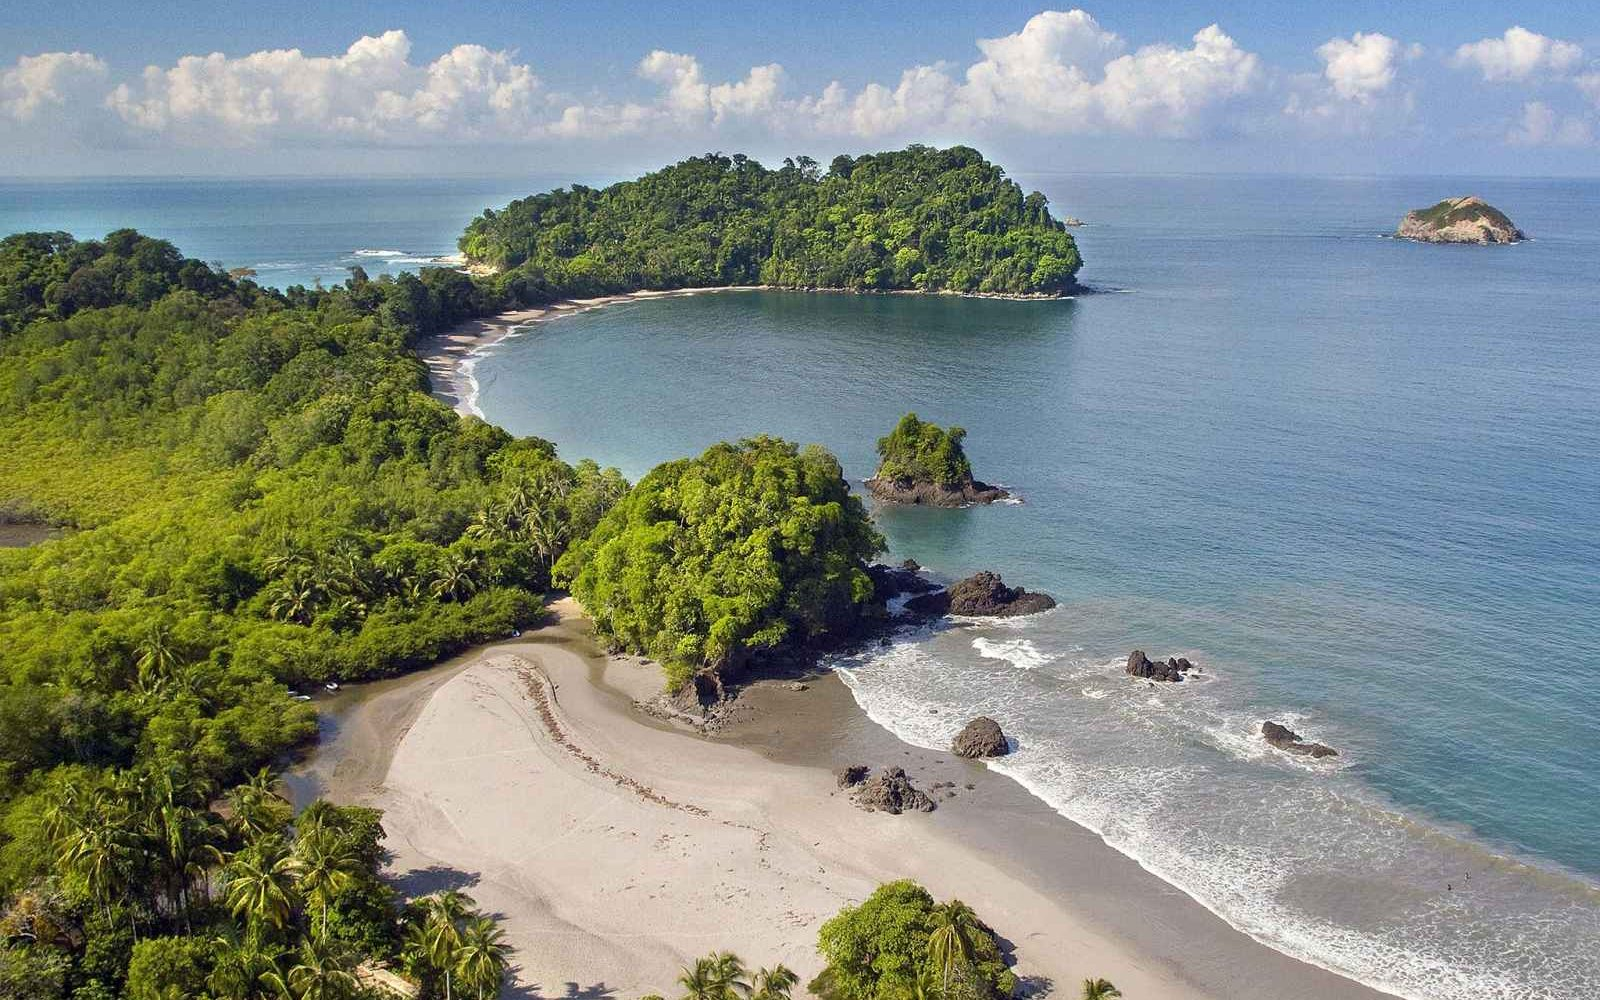 Parc national Manuel Antonio, Costa Rica